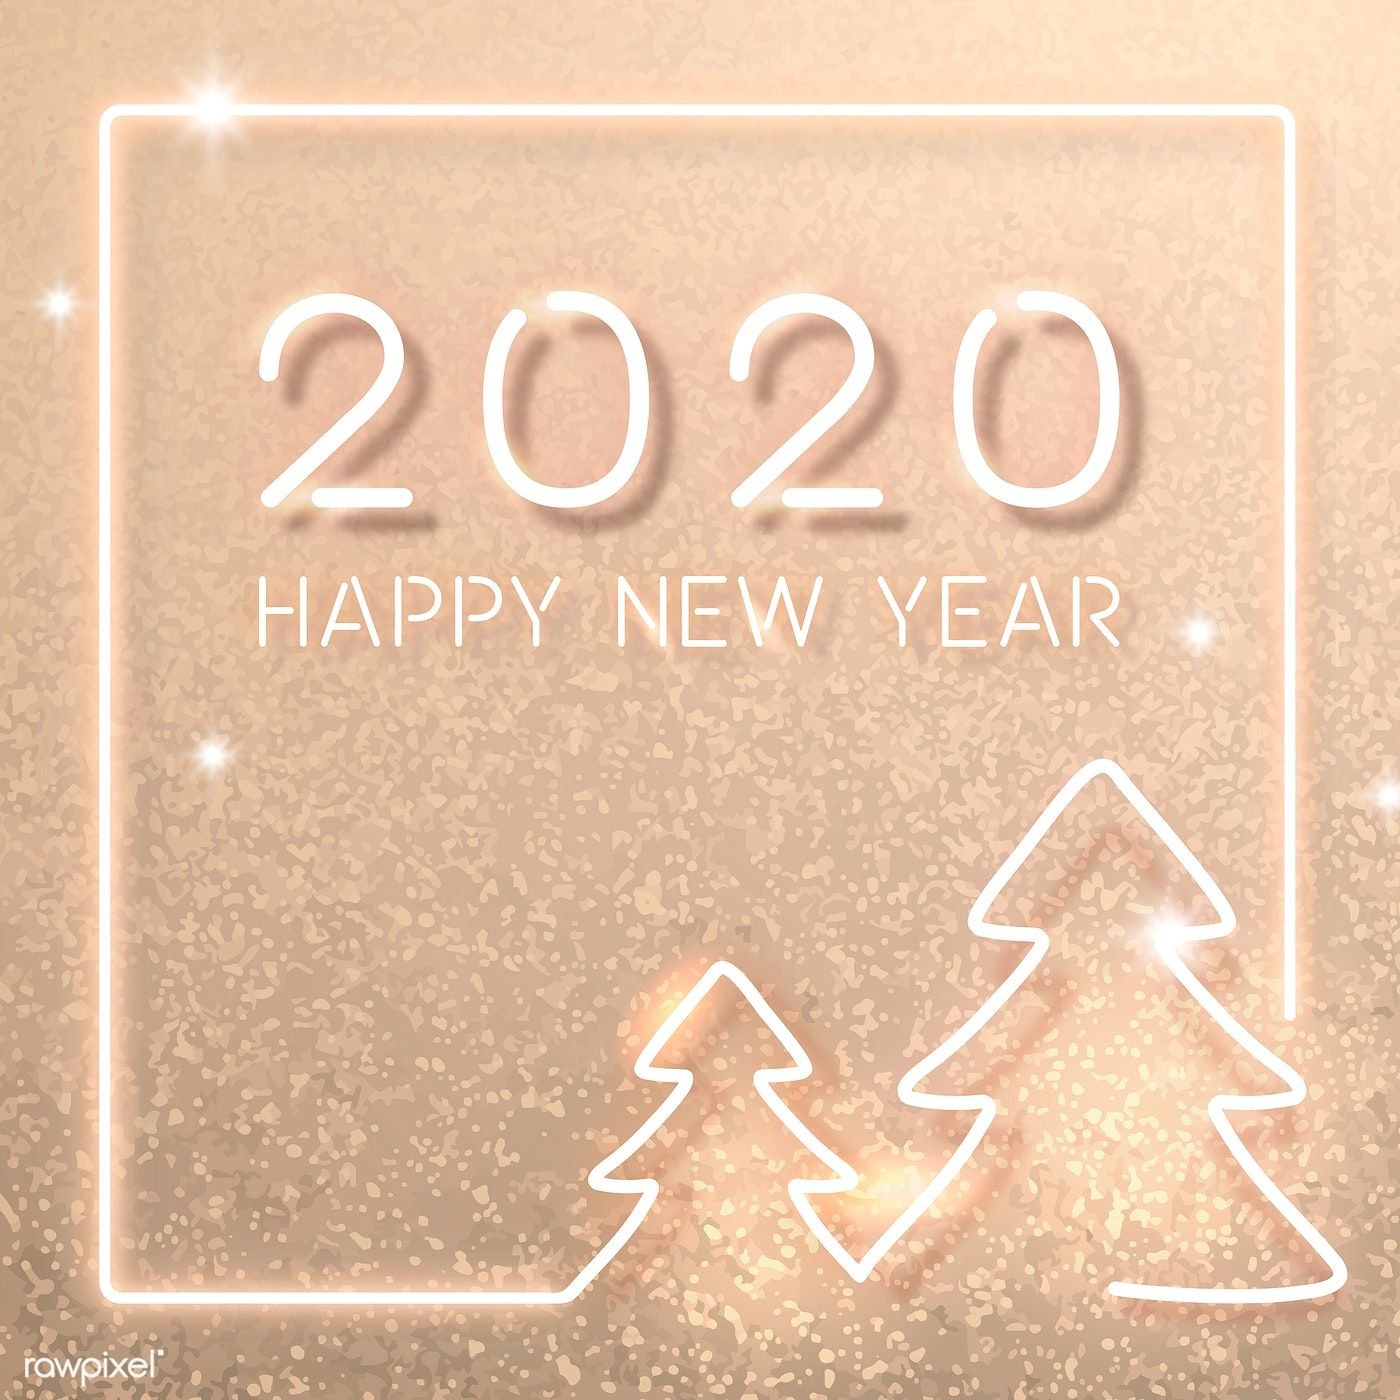 Download Premium Vector Of Gold Neon New Year Social Template Vector New Year Card Design Social Templates Happy New Year Images